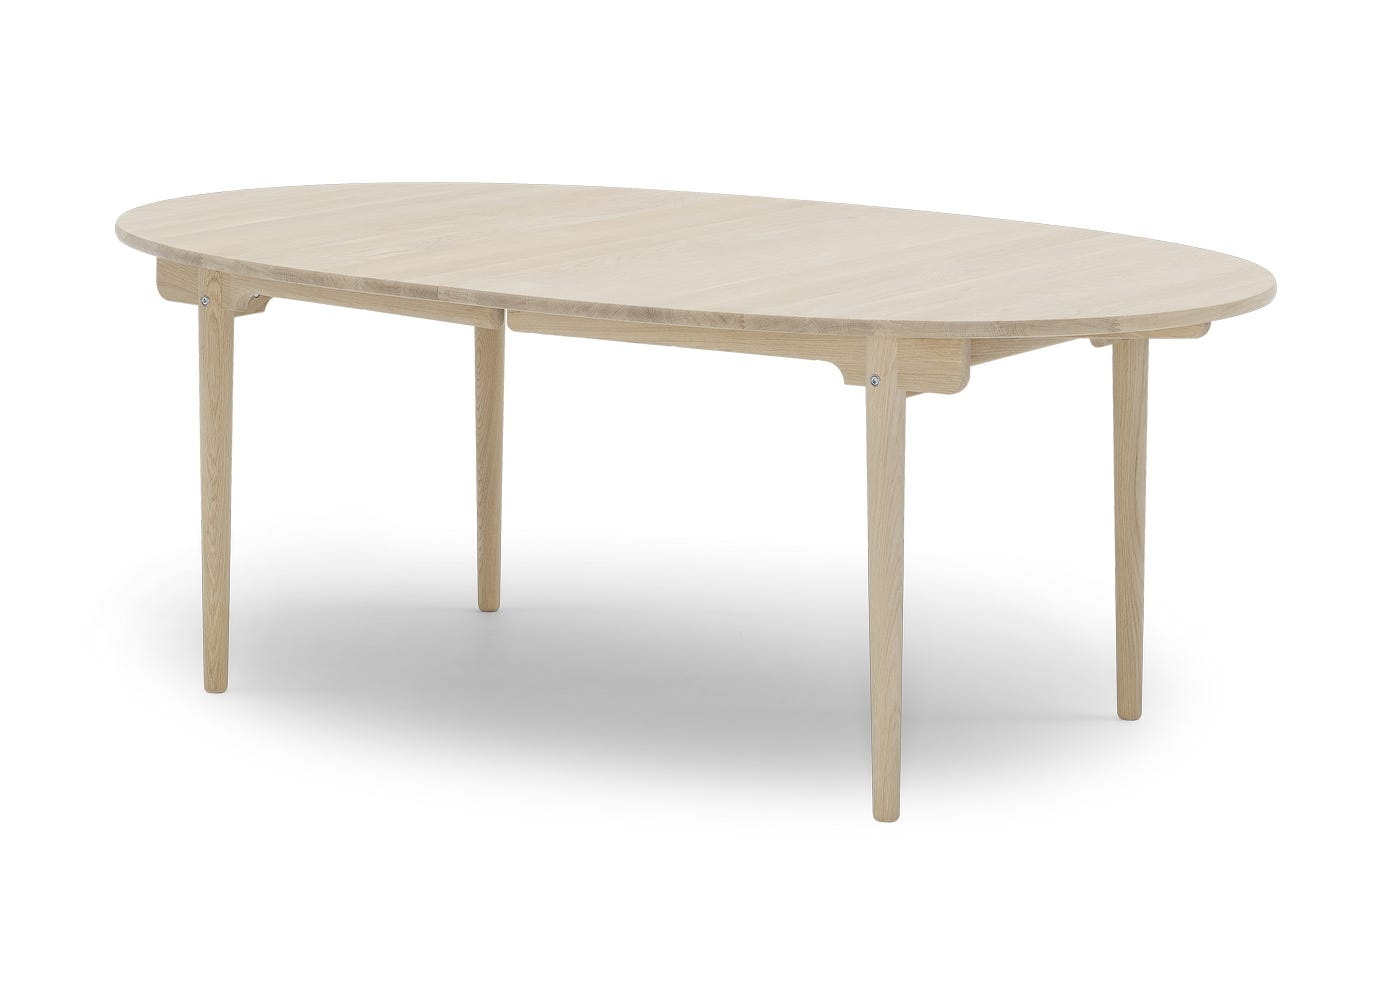 CH338 Extending Dining Table Soaped Oak - Side profile.